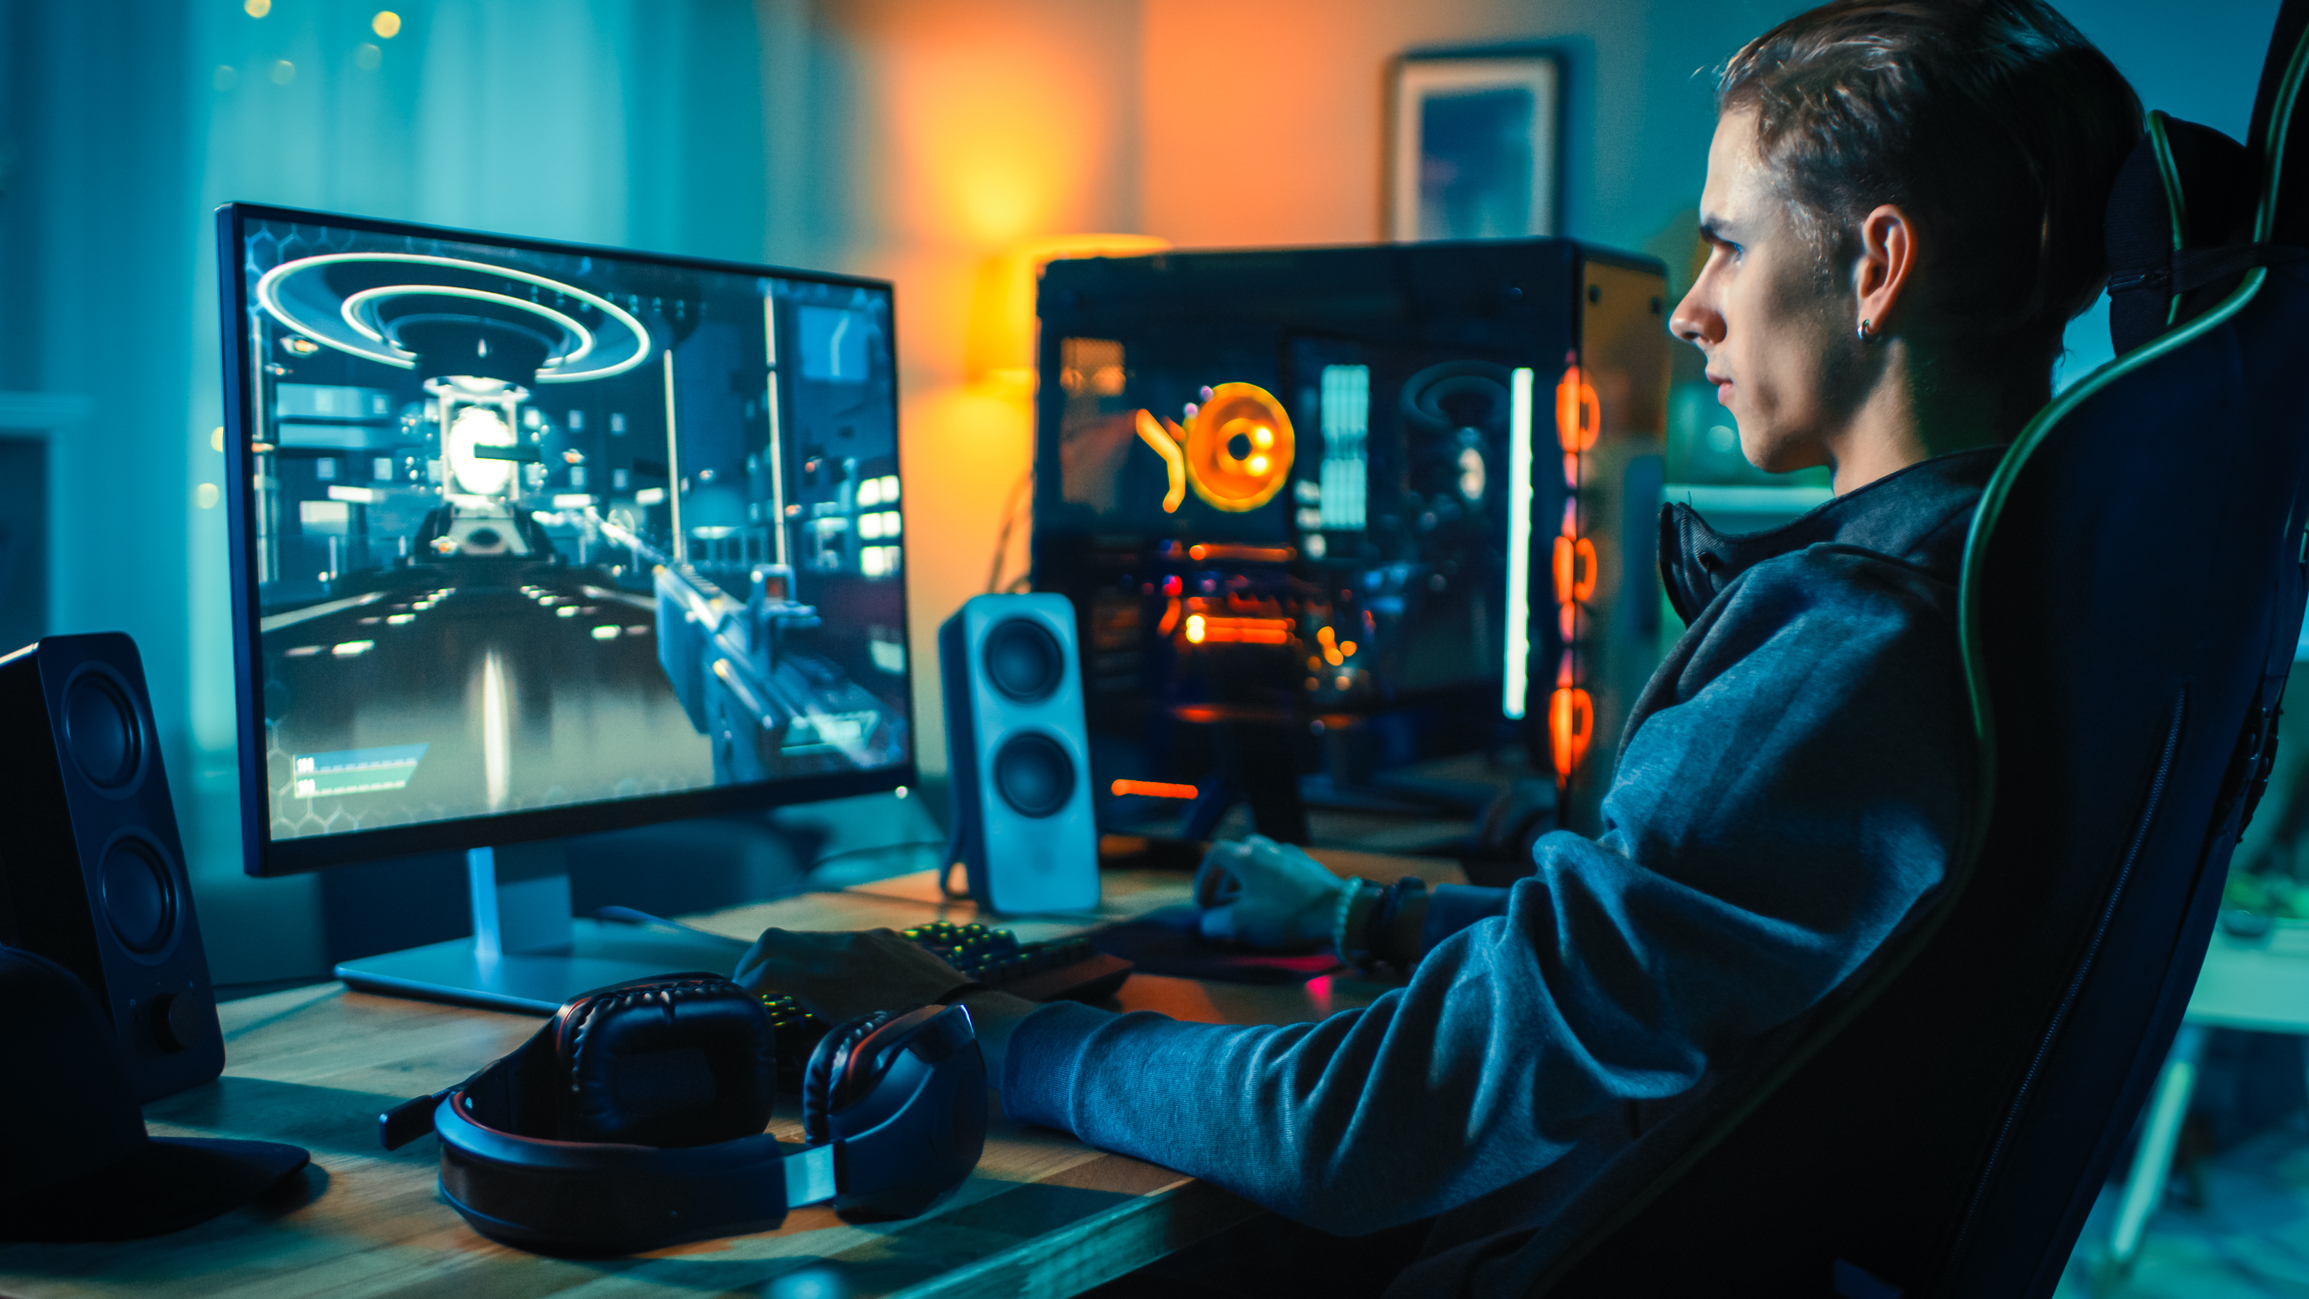 Cheerful Gamer Playing First-Person Shooter Online Video Game on His  Powerful Personal Computer. Room and PC have Colorful Neon Led Lights. Cozy  Evening at Home. - RDS Jeux vidéo